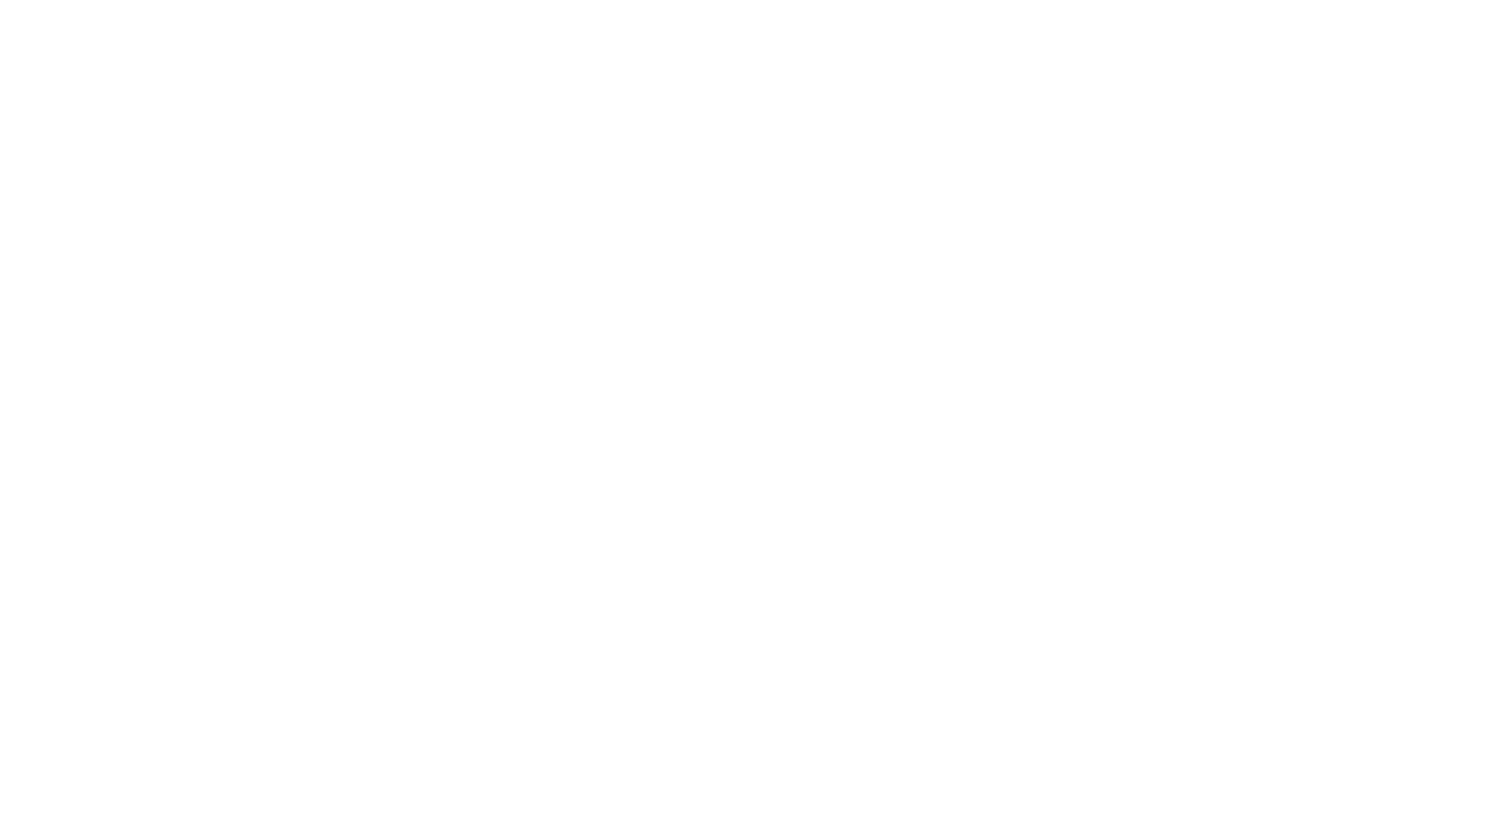 Travel Teacher